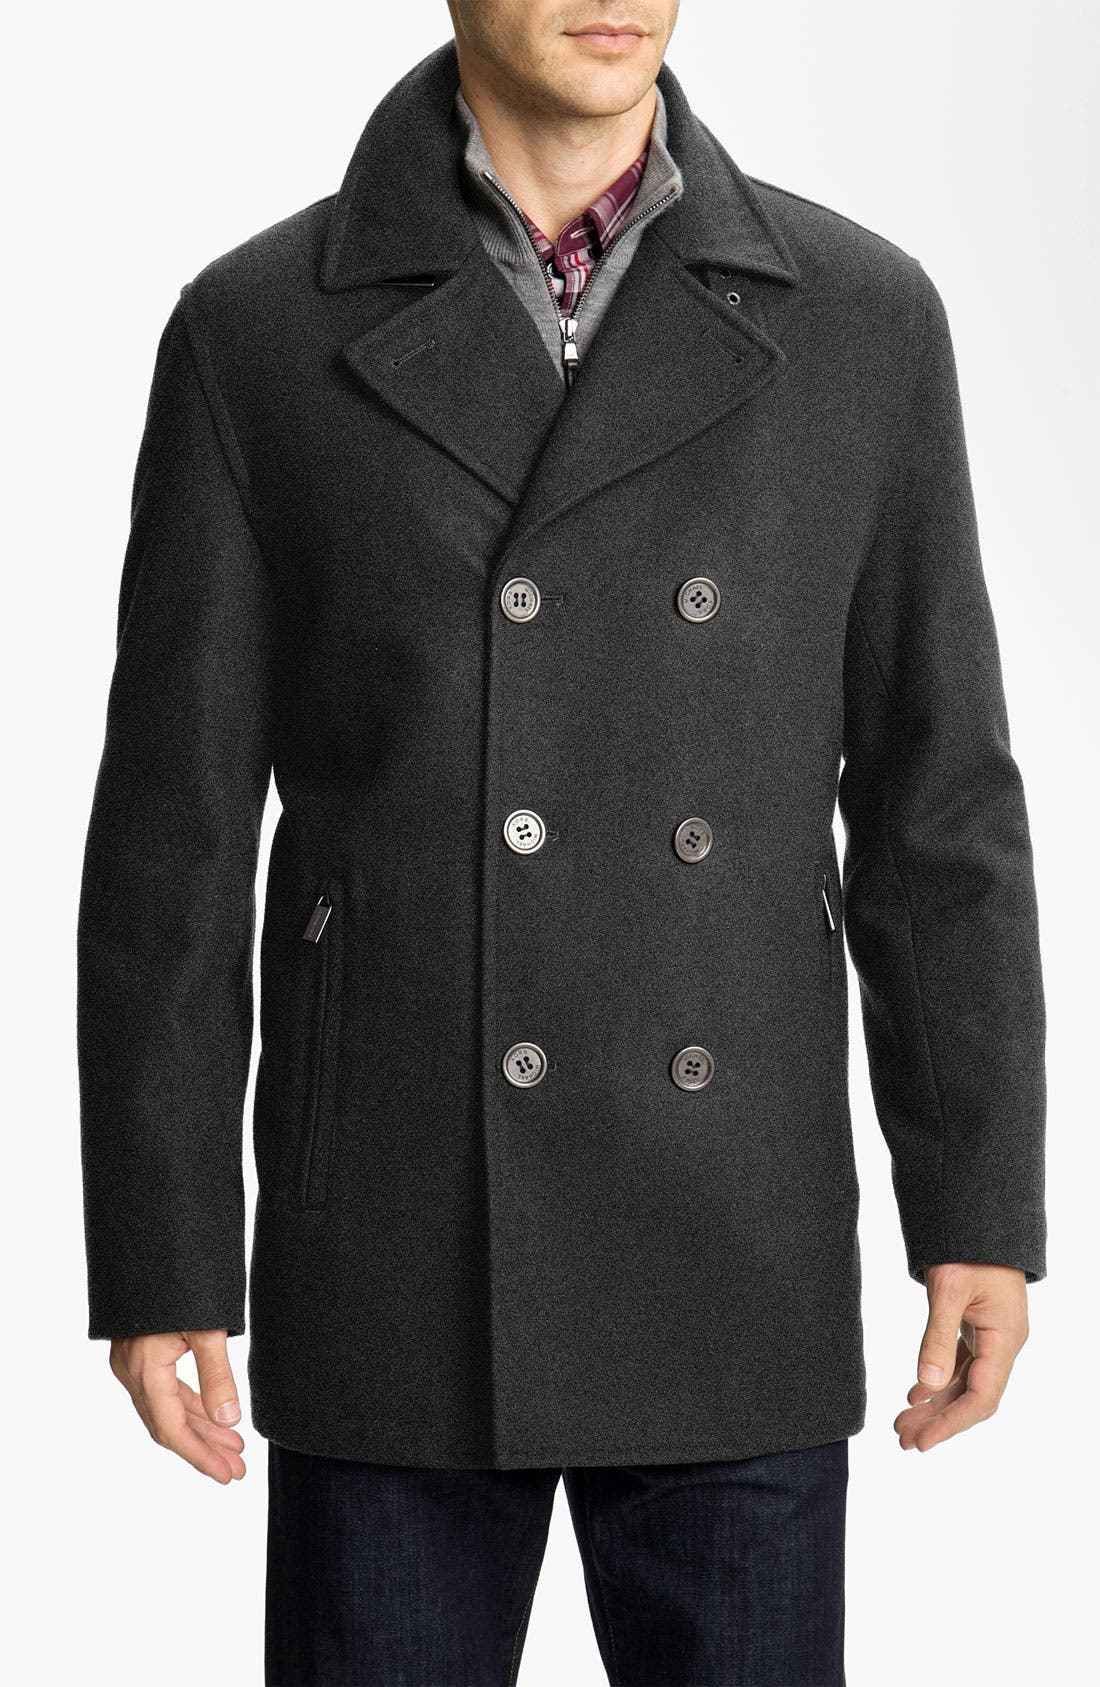 Alternate Image 1 Selected - Michael Kors 'San Diego' Wool Blend Peacoat (Online Exclusive)